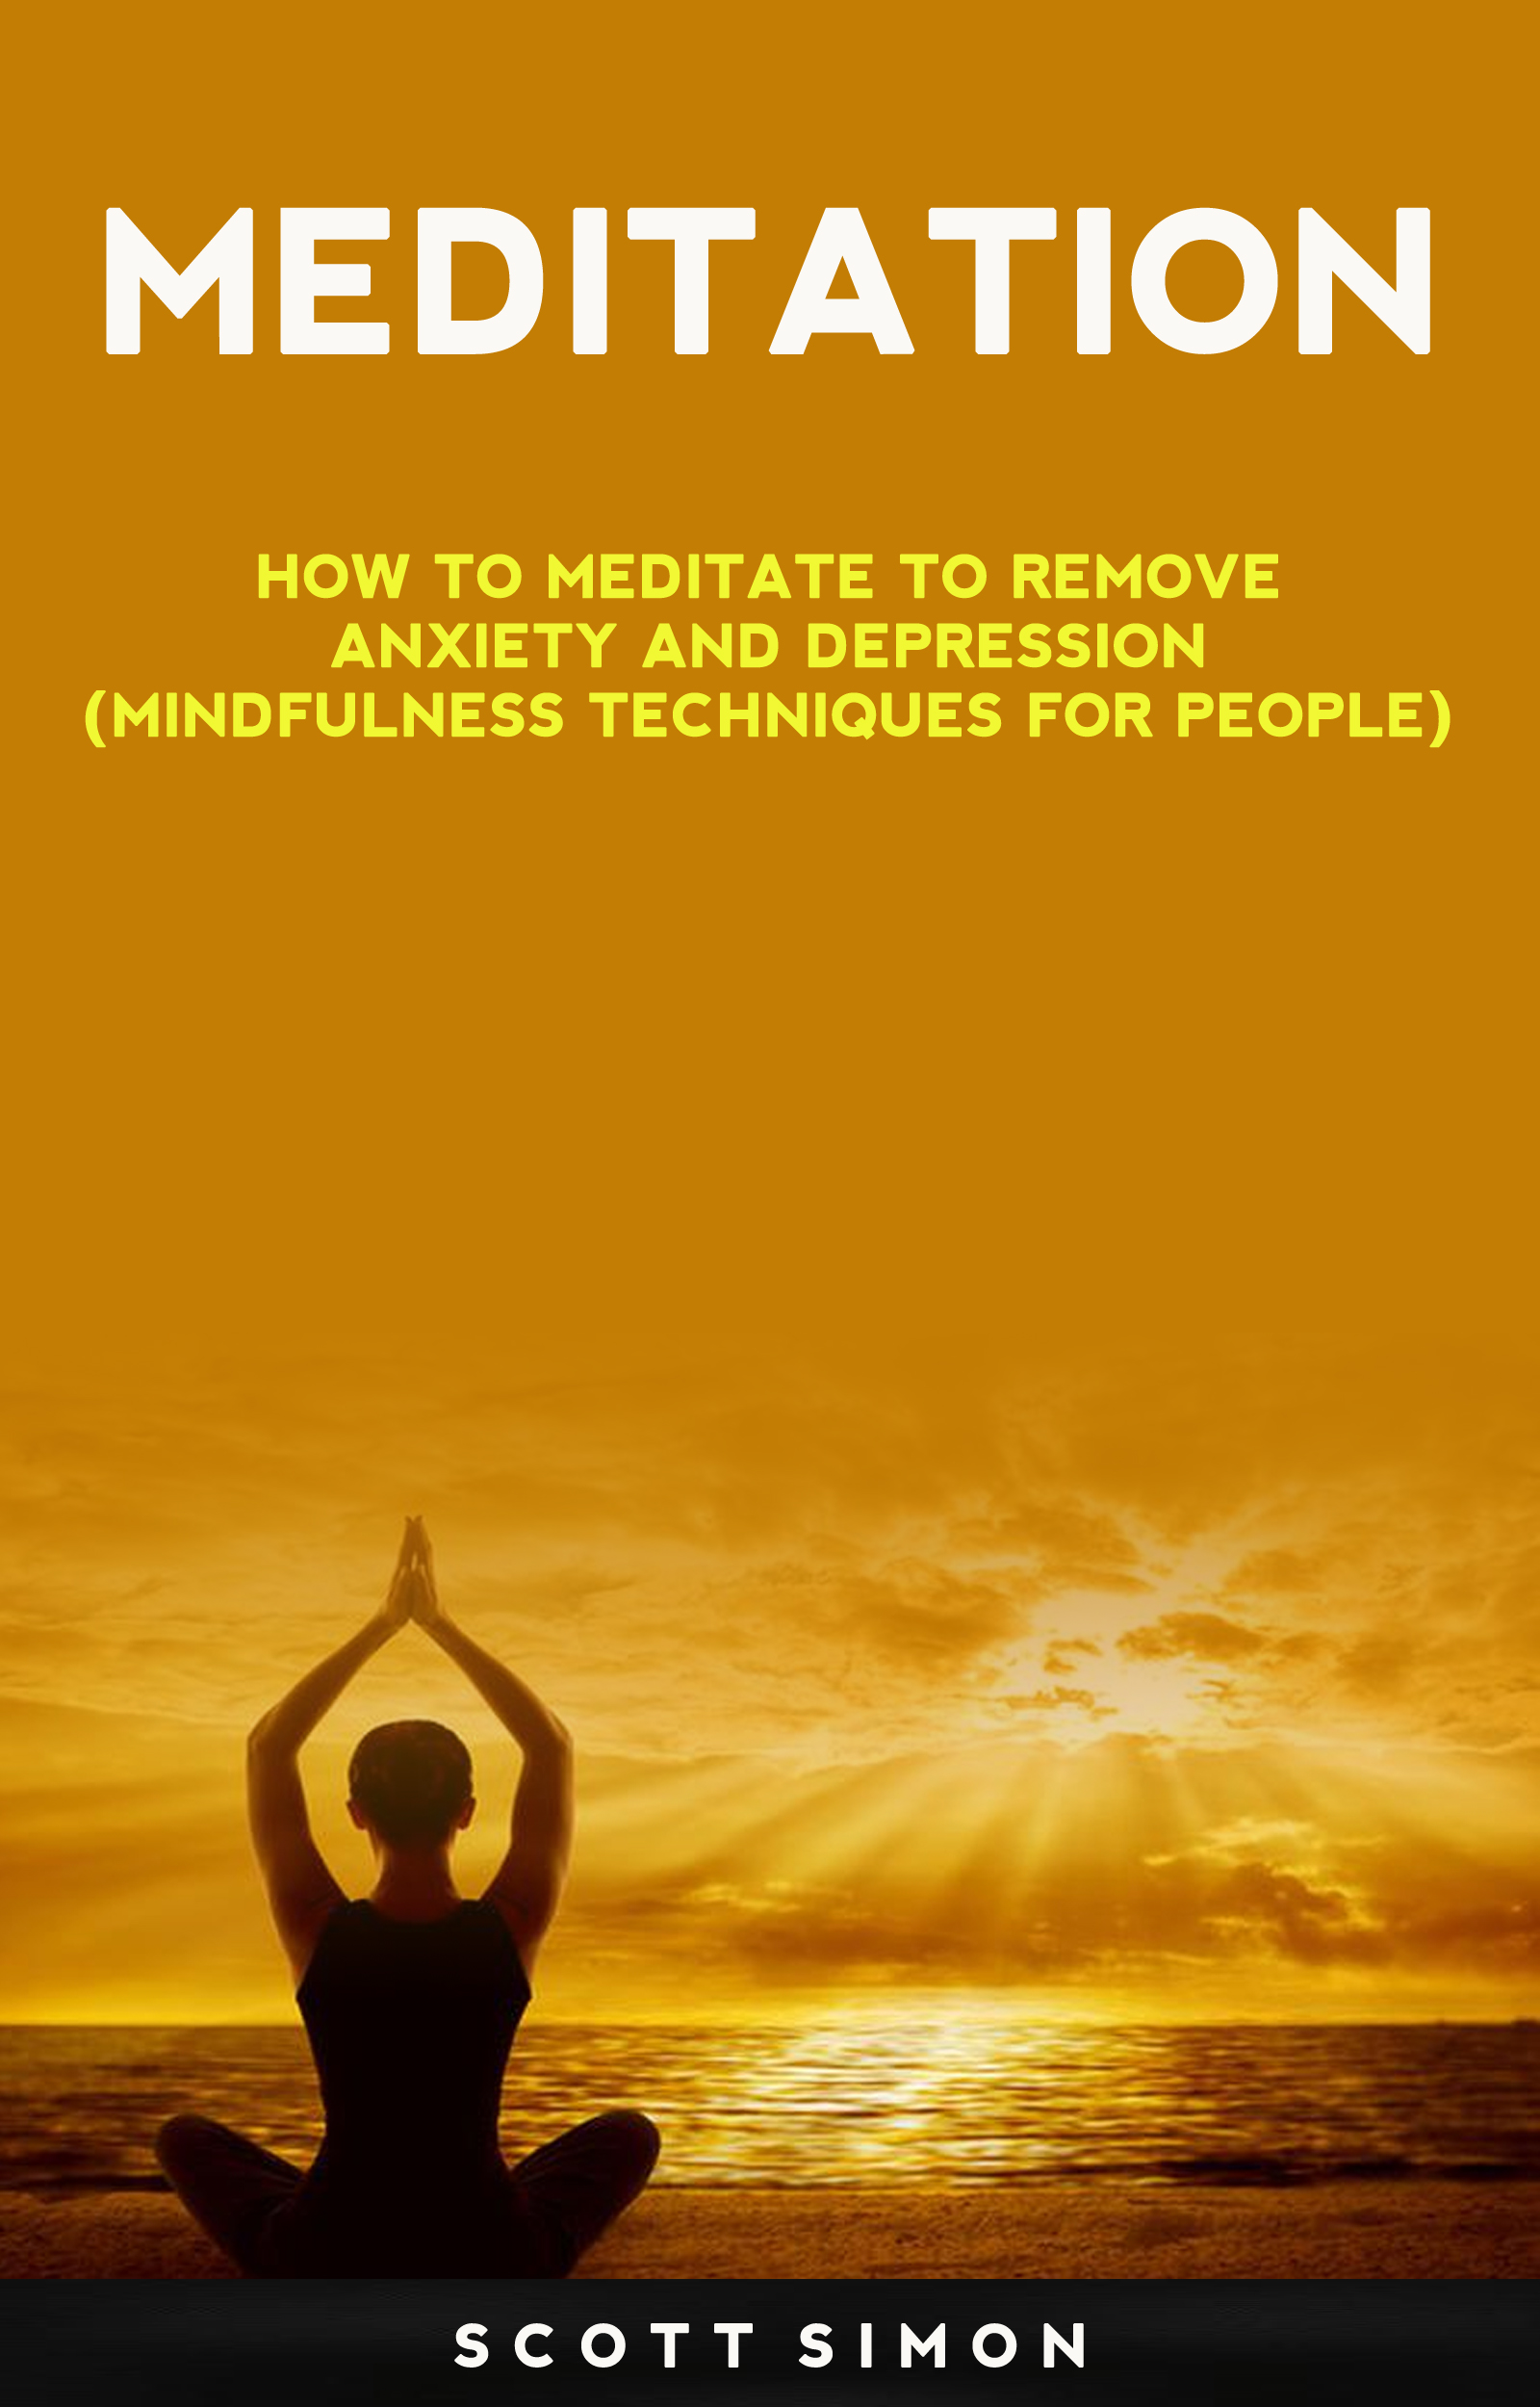 Babelcube - Meditation: how to meditate to remove anxiety ...